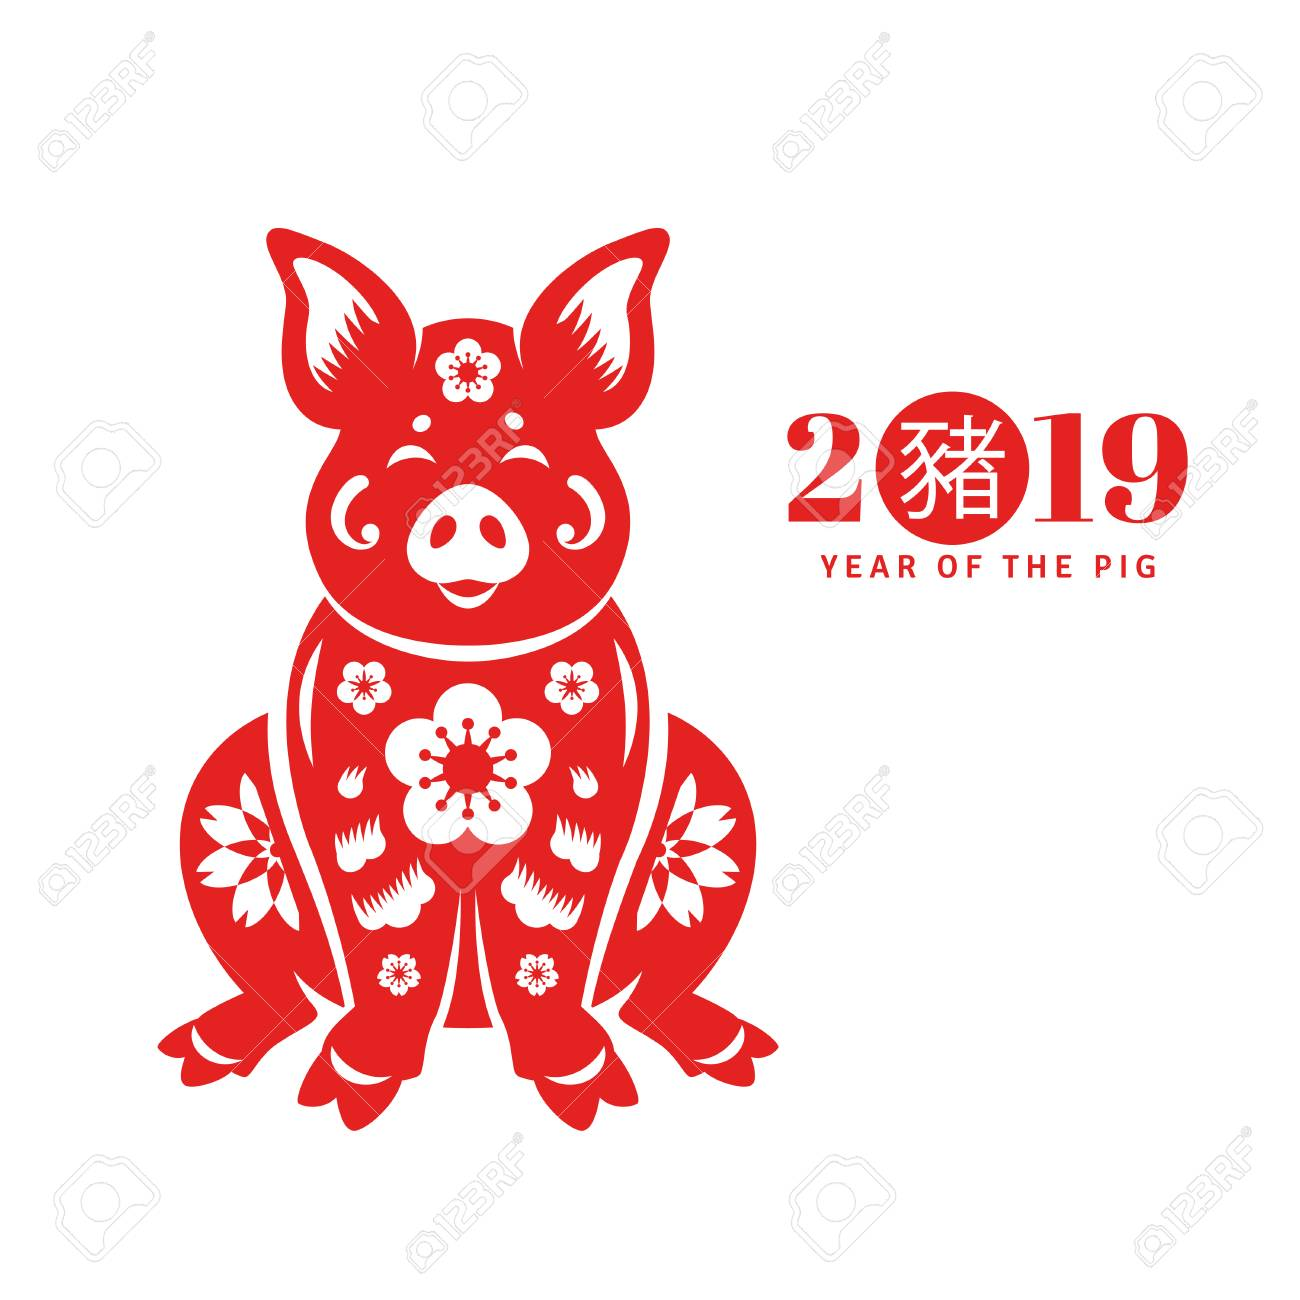 Year of the Pig.